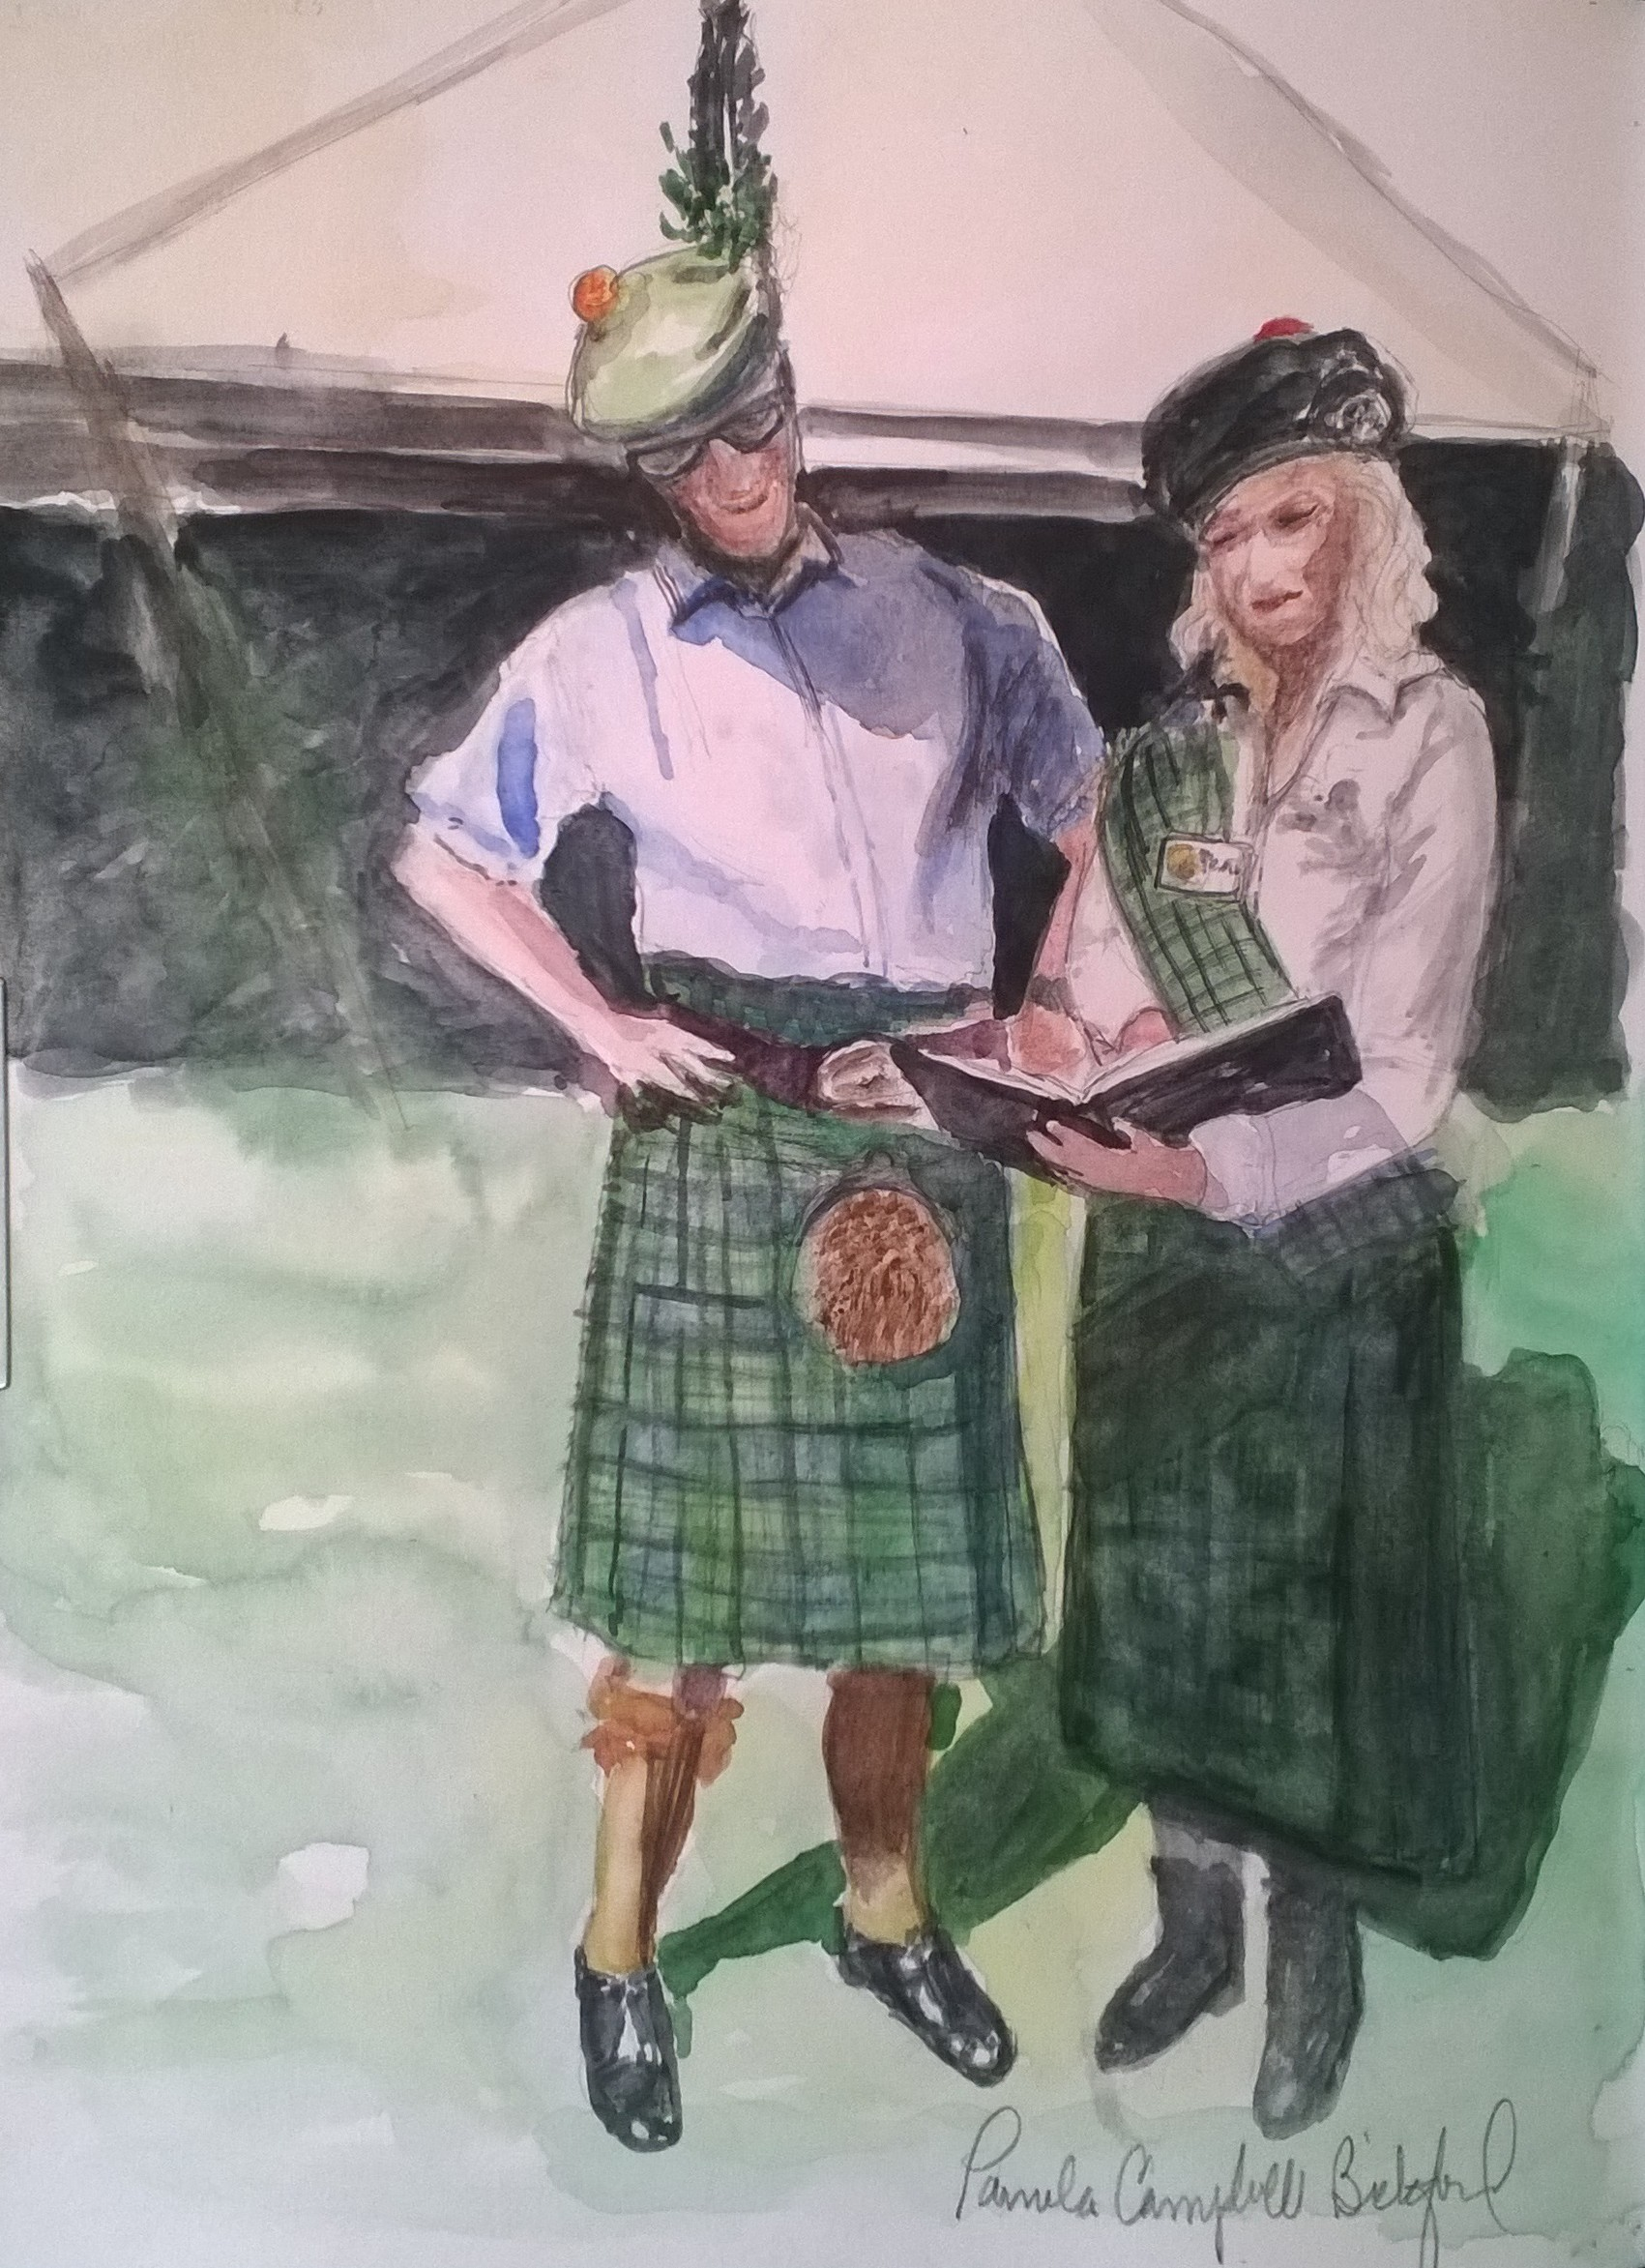 During the Inveraray Highland Games, I had the great honor to have another moment with His Grace, the 13th Duke of Argyll, when I was able to share with him my Scotland Sketchbook, and my family connection to Clan Campbell. The Duke graciously agreed to autograph my pages with the painting of Inveraray Castle! What a family treasure this book will be!  How does one summarize in a few words over 800 years of the Campbell Clan and their Chiefs? It is challenging, but here is my best attempt! Surprisingly, the first Campbells were thought to be from England, in the kingdom of Strathclyde, sent to Scotland to protect the king's lands. The Campbell Chiefs take their Gaelic name, Mac Cailein Mor, from Colin Mor Campbell, who died in 1296 in a dispute with the MadDougalls of Lorne. His son, Sir Neil Campbell was friend and brother-n-law of King Robert the Bruce. Sir Neil's son, Sir Colin Campbell was rewarded by Robert the Bruce with land in the Western Highlands, and soon became the most powerful family in this area of Scotland. Down through the centuries,the Clan Campbell Chiefs, descending from knights,were given additional lands and titles of Earl of Argyll, to ColinCampbell in 1477, then to duke with Archibald Campbell, 10th Earl and 1st Duke of Argyll down to our present day Torquhil Campbell, 13th Duke of Argyll born 1968. In American terms, he is the patriarch of my extended Campbell family!